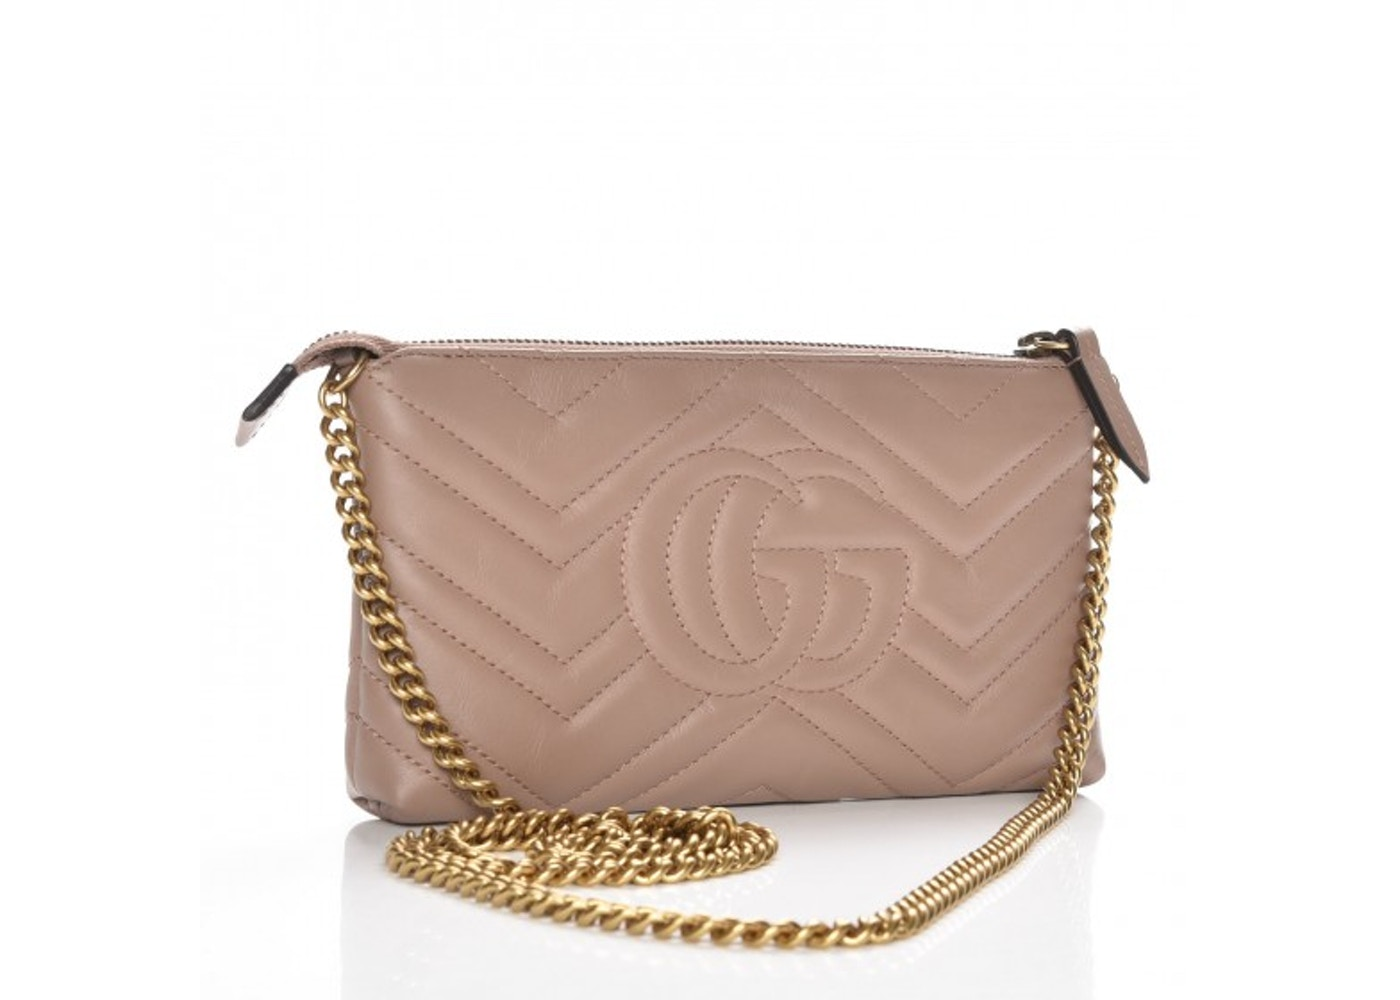 Gucci 498100 GG Marmont Small Shoulder Bag Nude